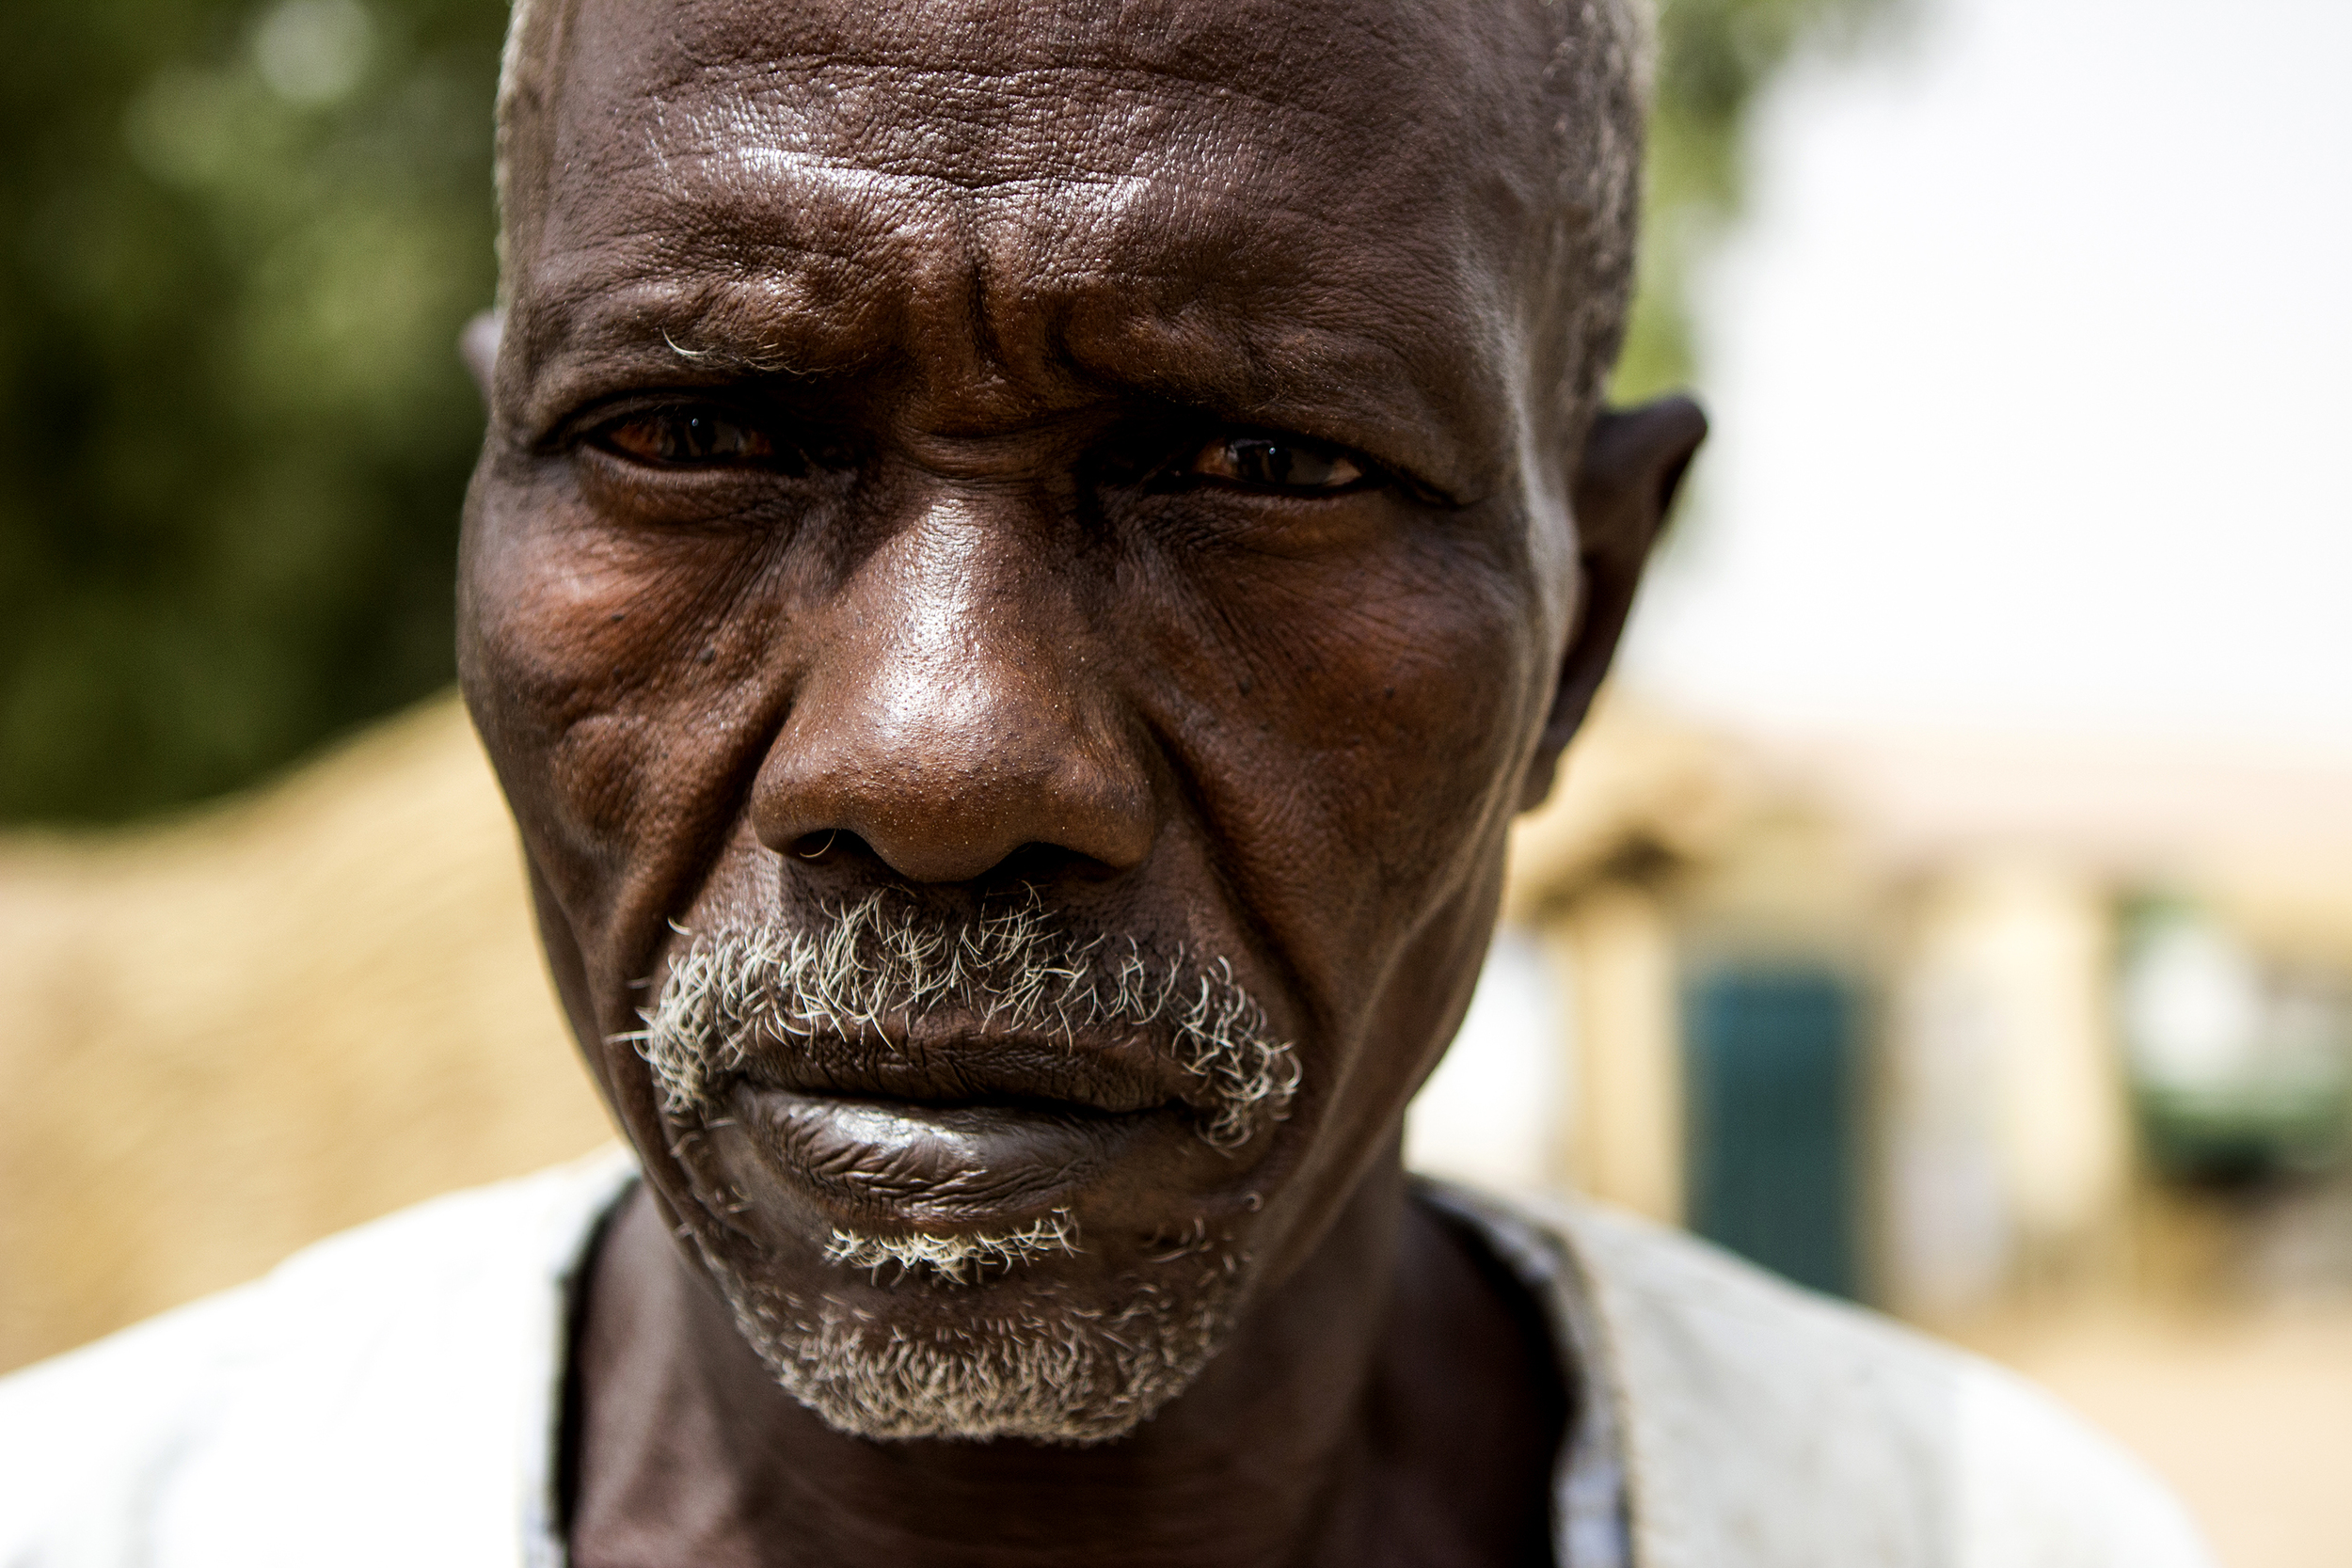 """A retired Nigerian military soldier is seen in Yola, Nigeria, on March 4, 2015, at an informal camp for people displaced by Boko Haram violence. He says he's disappointed in the government's response to the insurgents. """"They're habitual criminals,"""" he said. """"Why are we not fighting them as such?"""